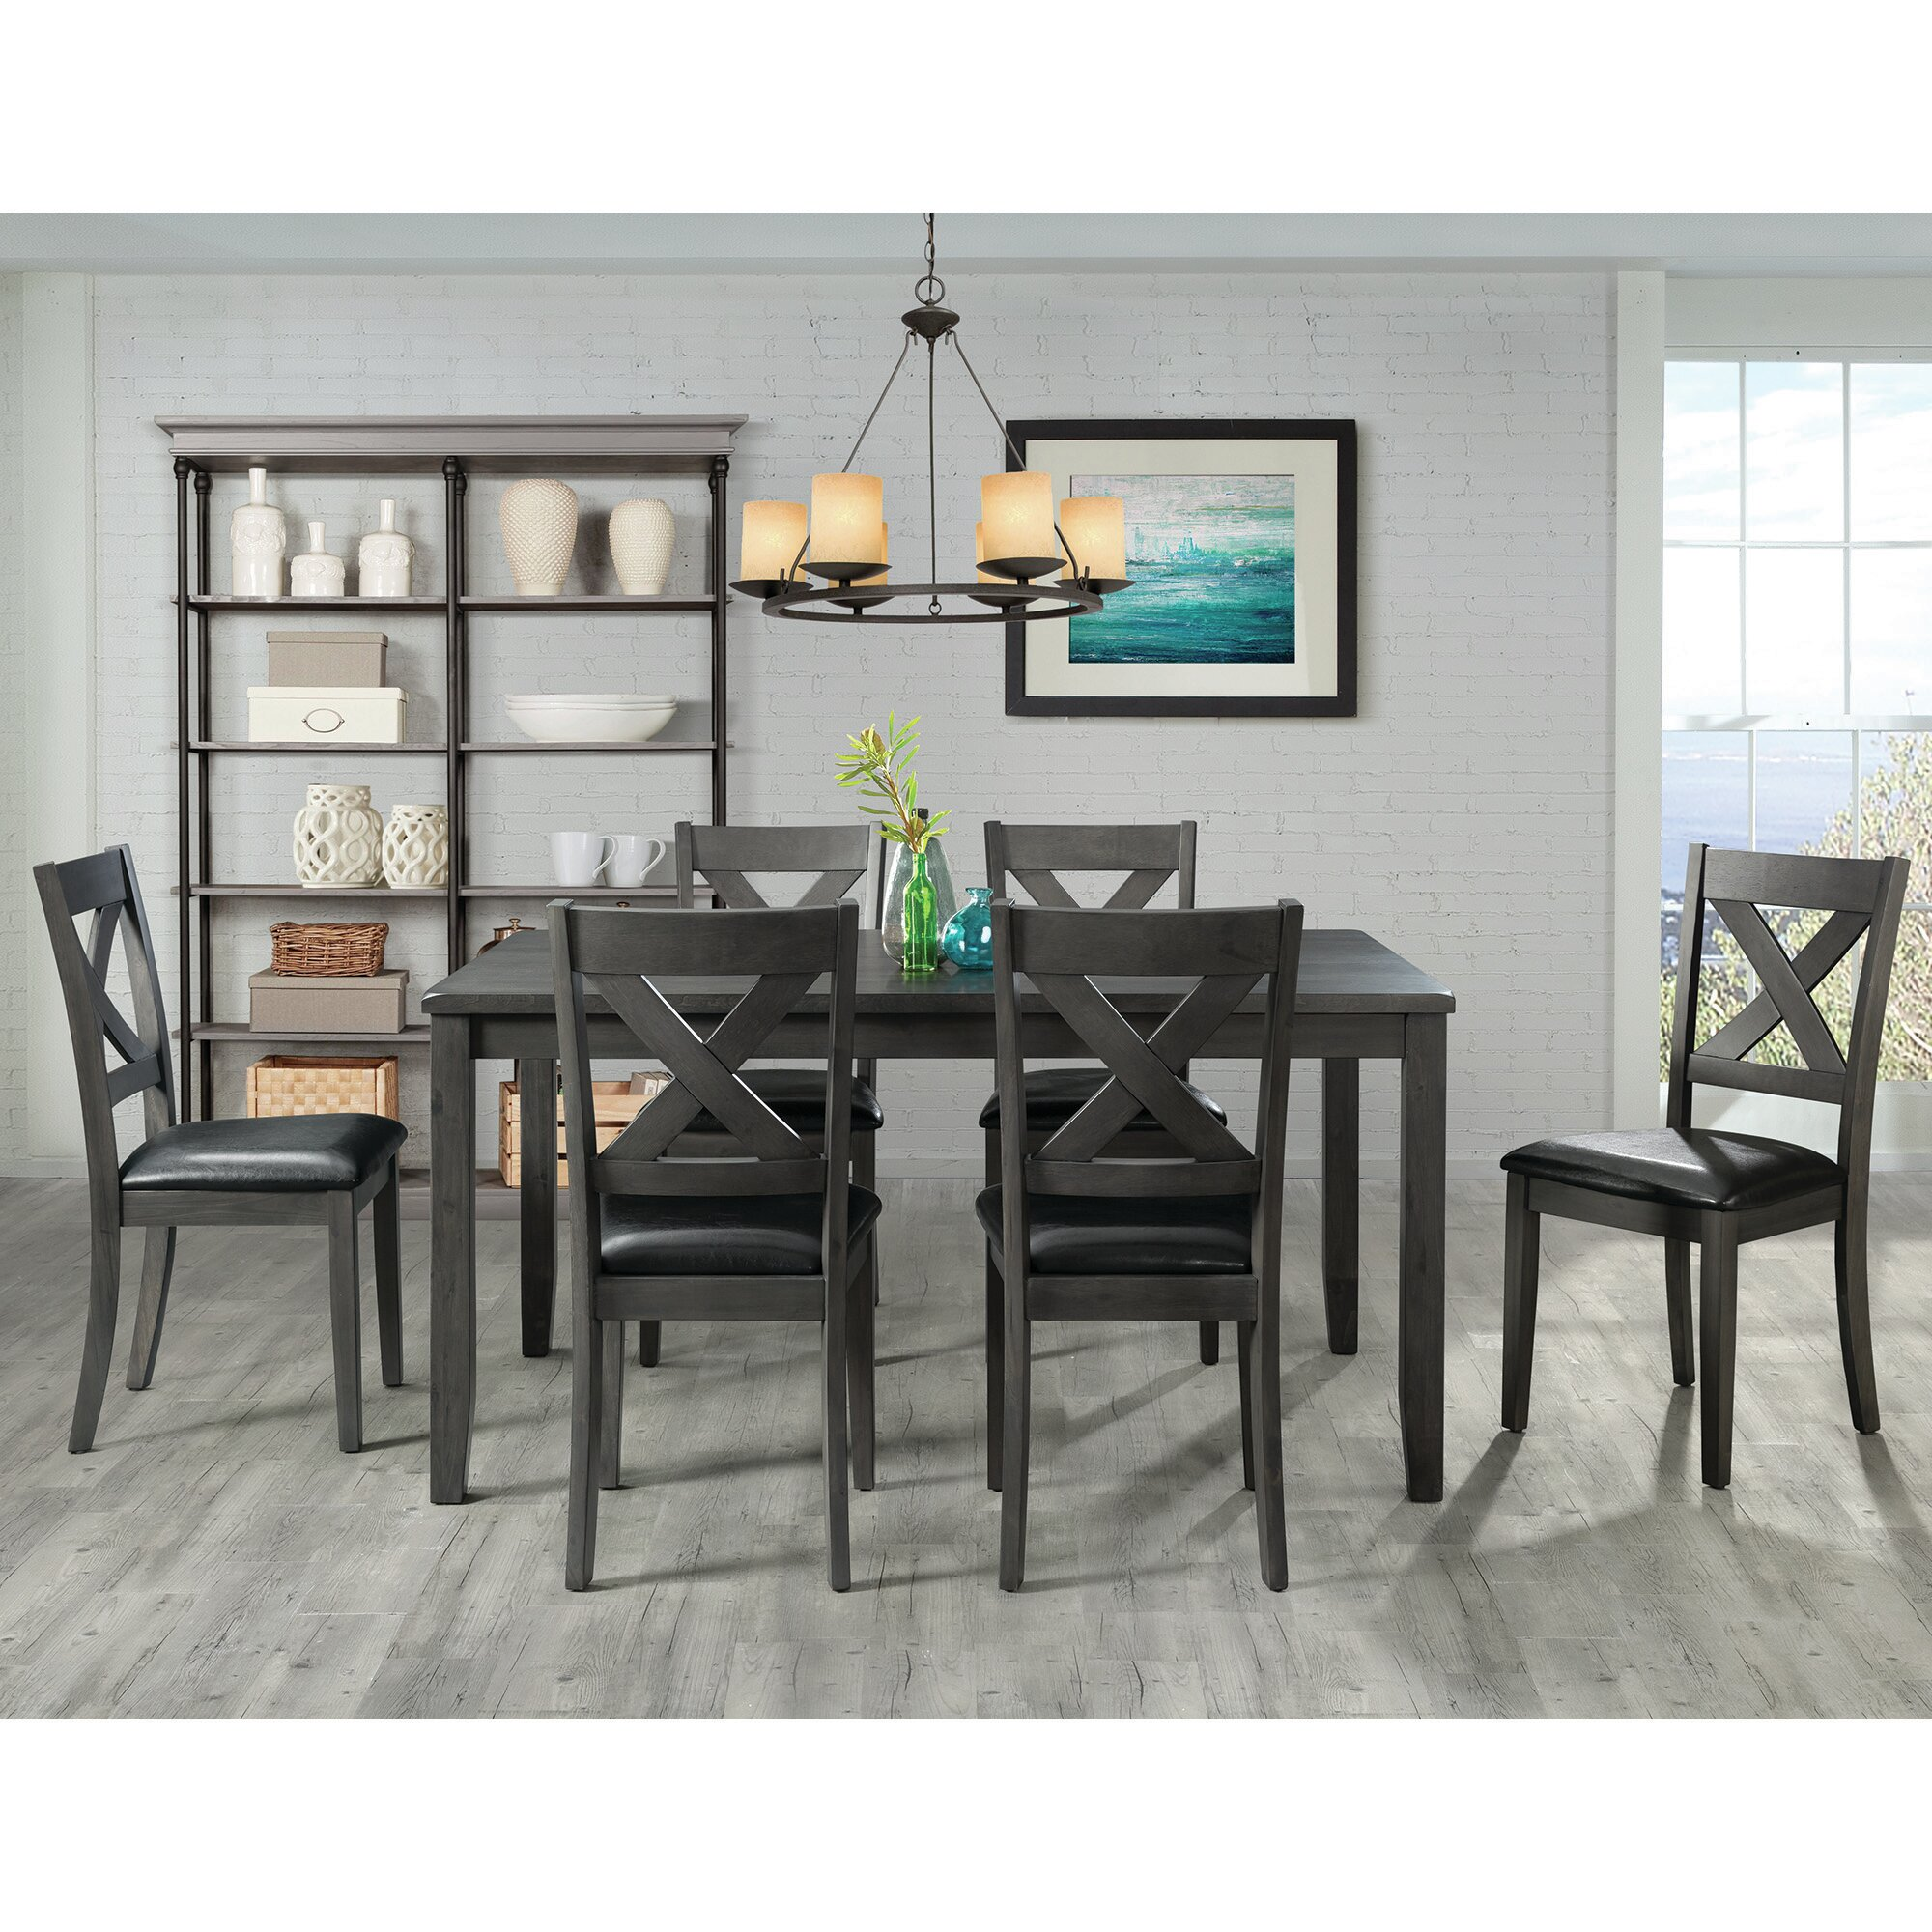 7 Piece Grey Kitchen & Dining Room Sets You'll Love in 2020 | Wayfair